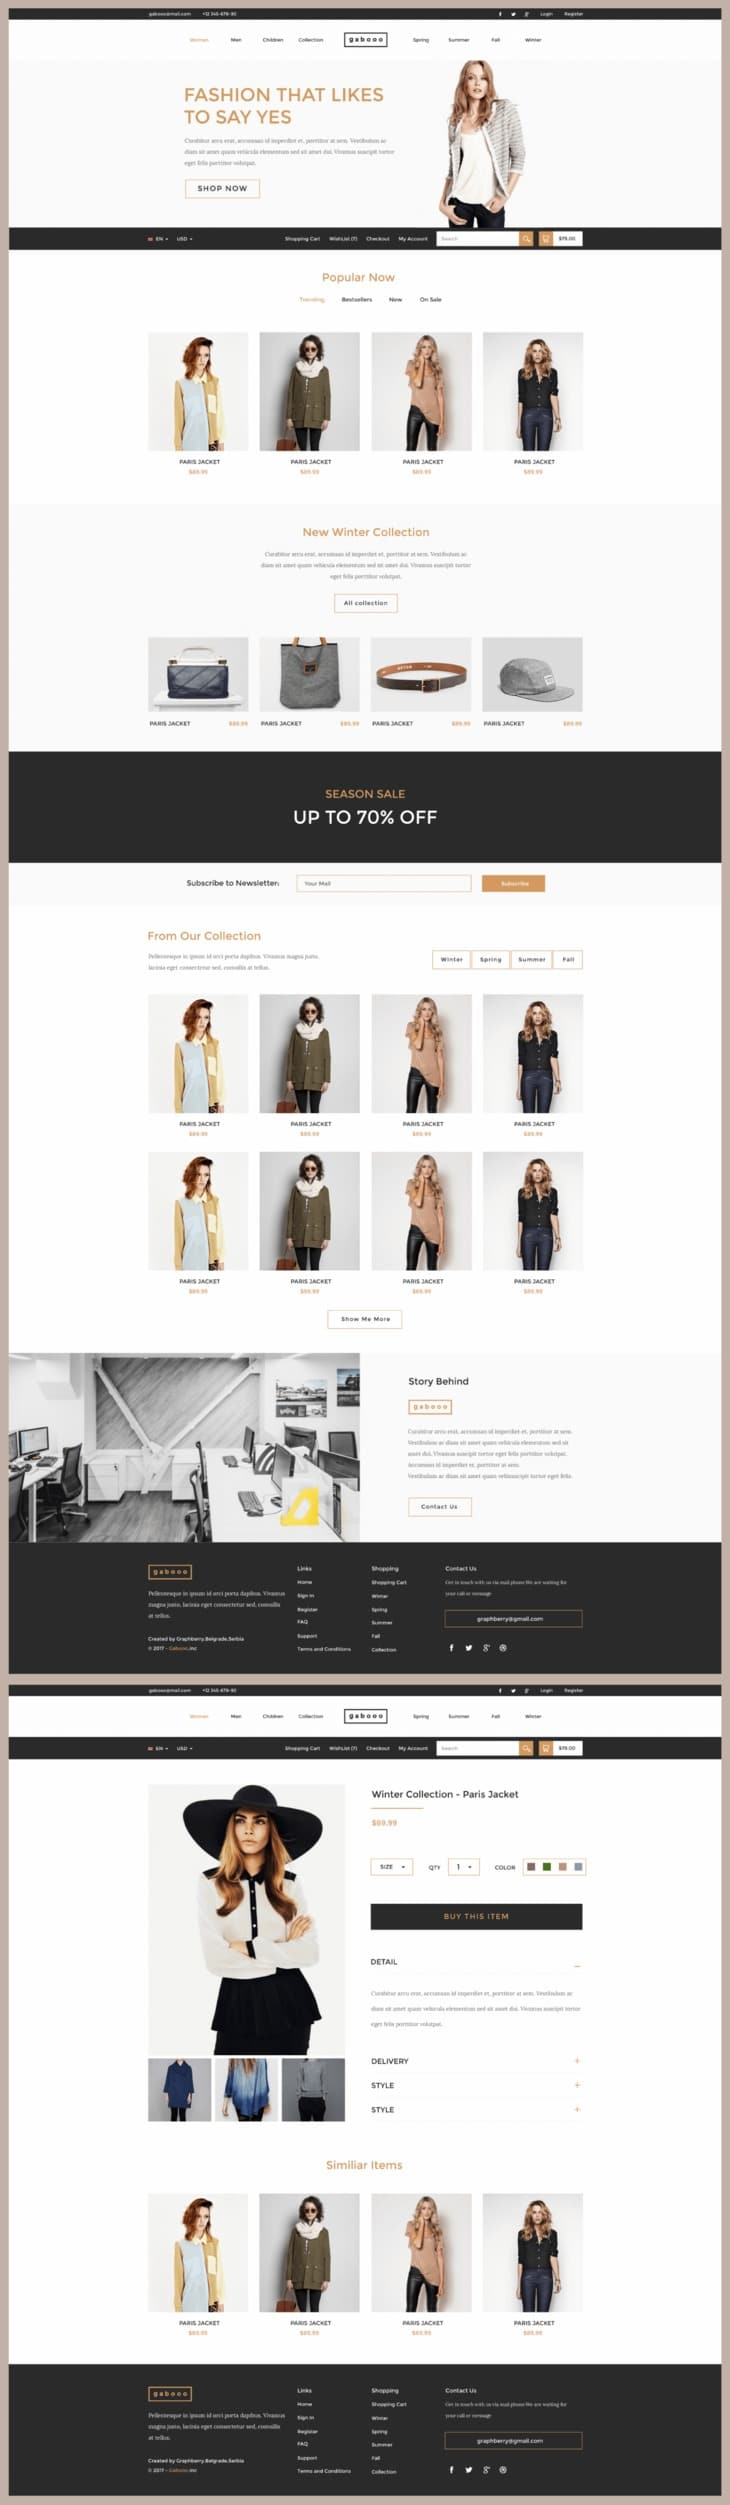 Gabooo Free Fashion eCommerce Theme PSD